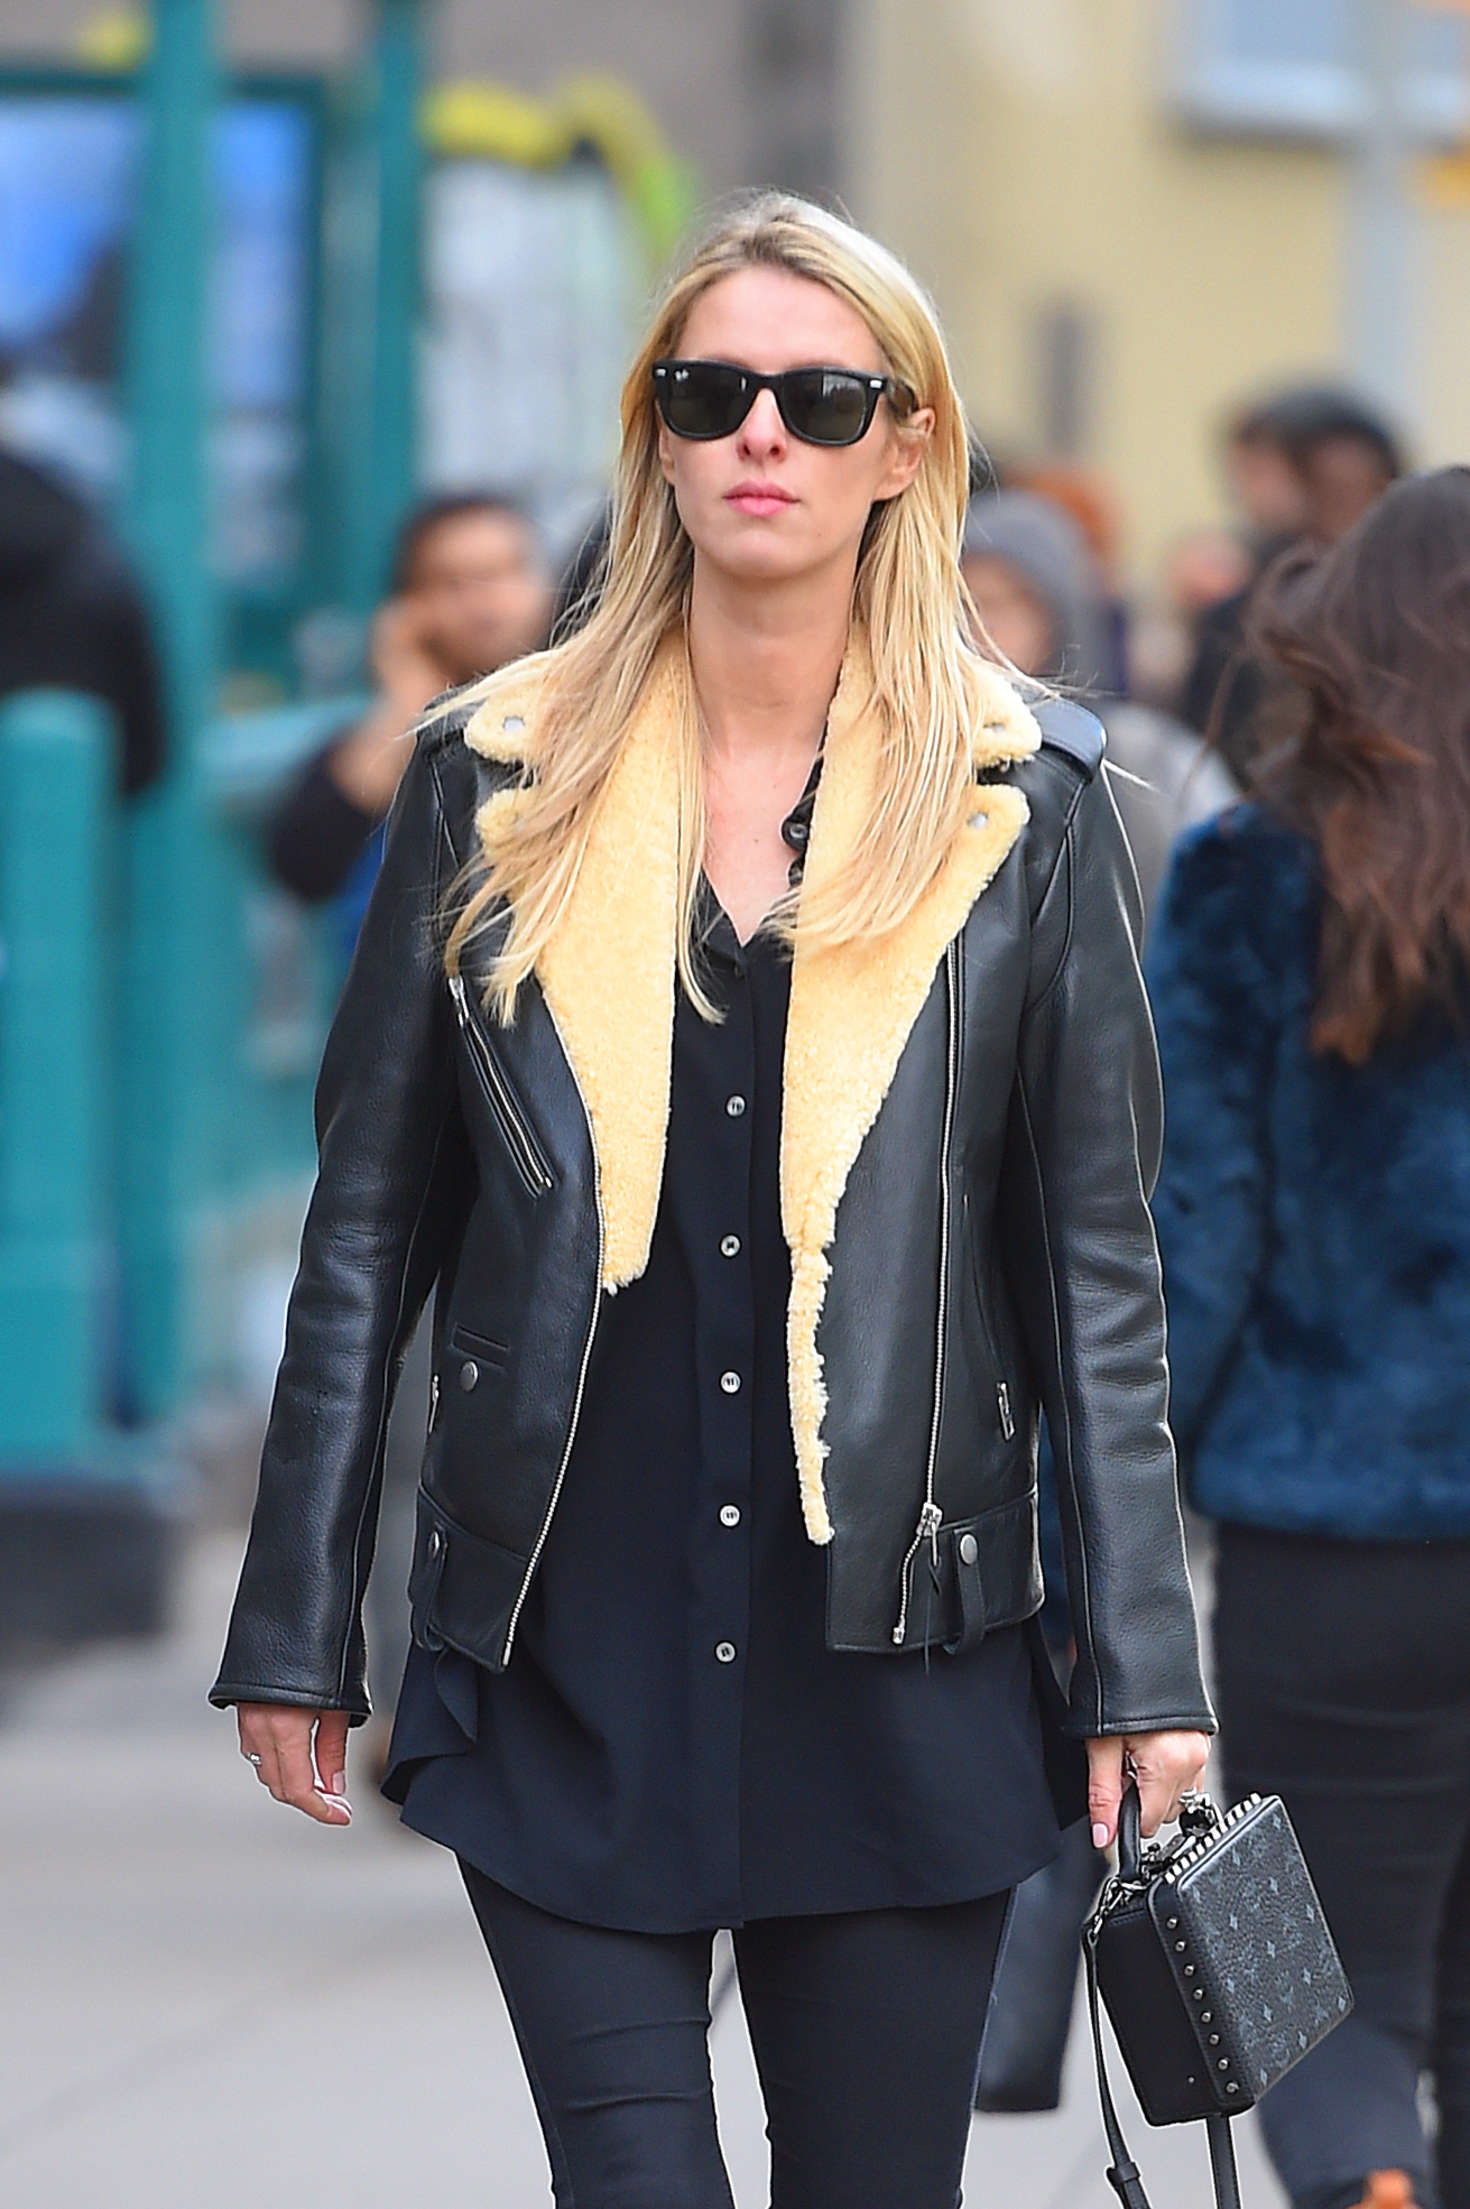 Nicky Hilton in Tights Shopping in New York